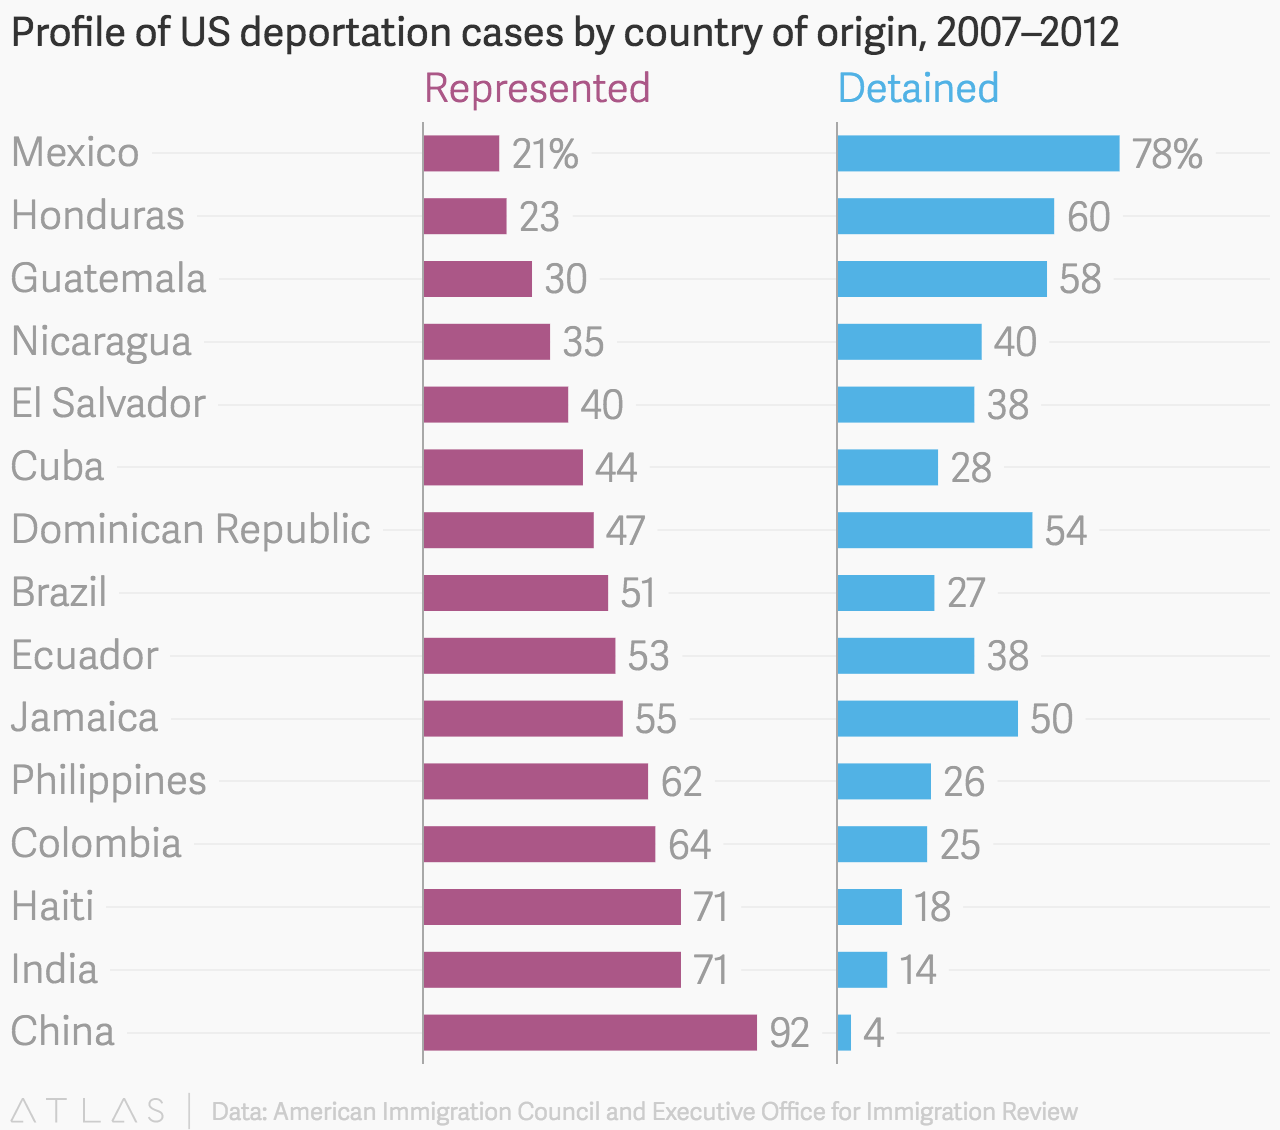 Profile Of US Deportation Cases By Country Of Origin, 2007